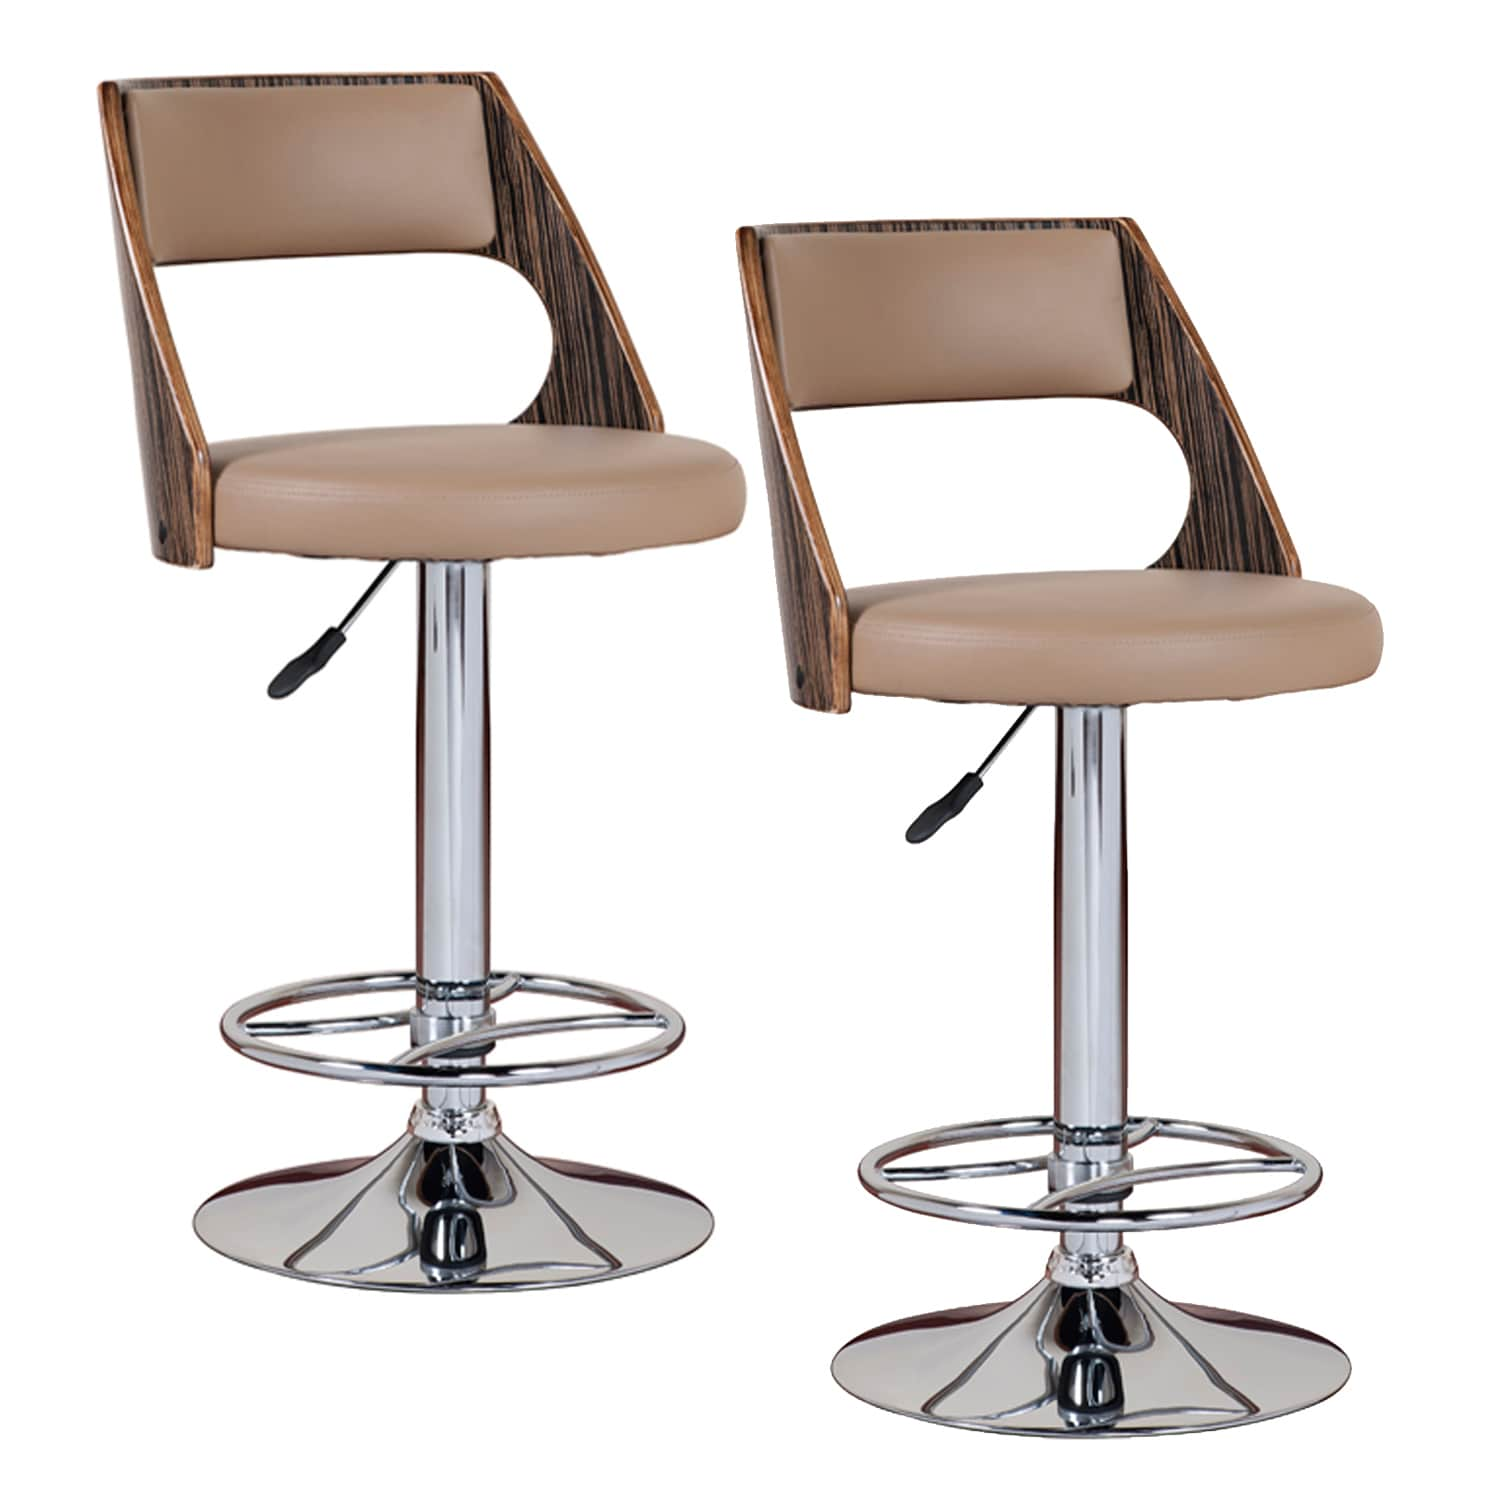 Saddle Bentback Adjustable Swivel Stool with Mocha  : Saddle Bentback Adjustable Swivel Stool with Mocha Highlights Set of 2 L14338597 from www.overstock.com size 1500 x 1500 jpeg 66kB